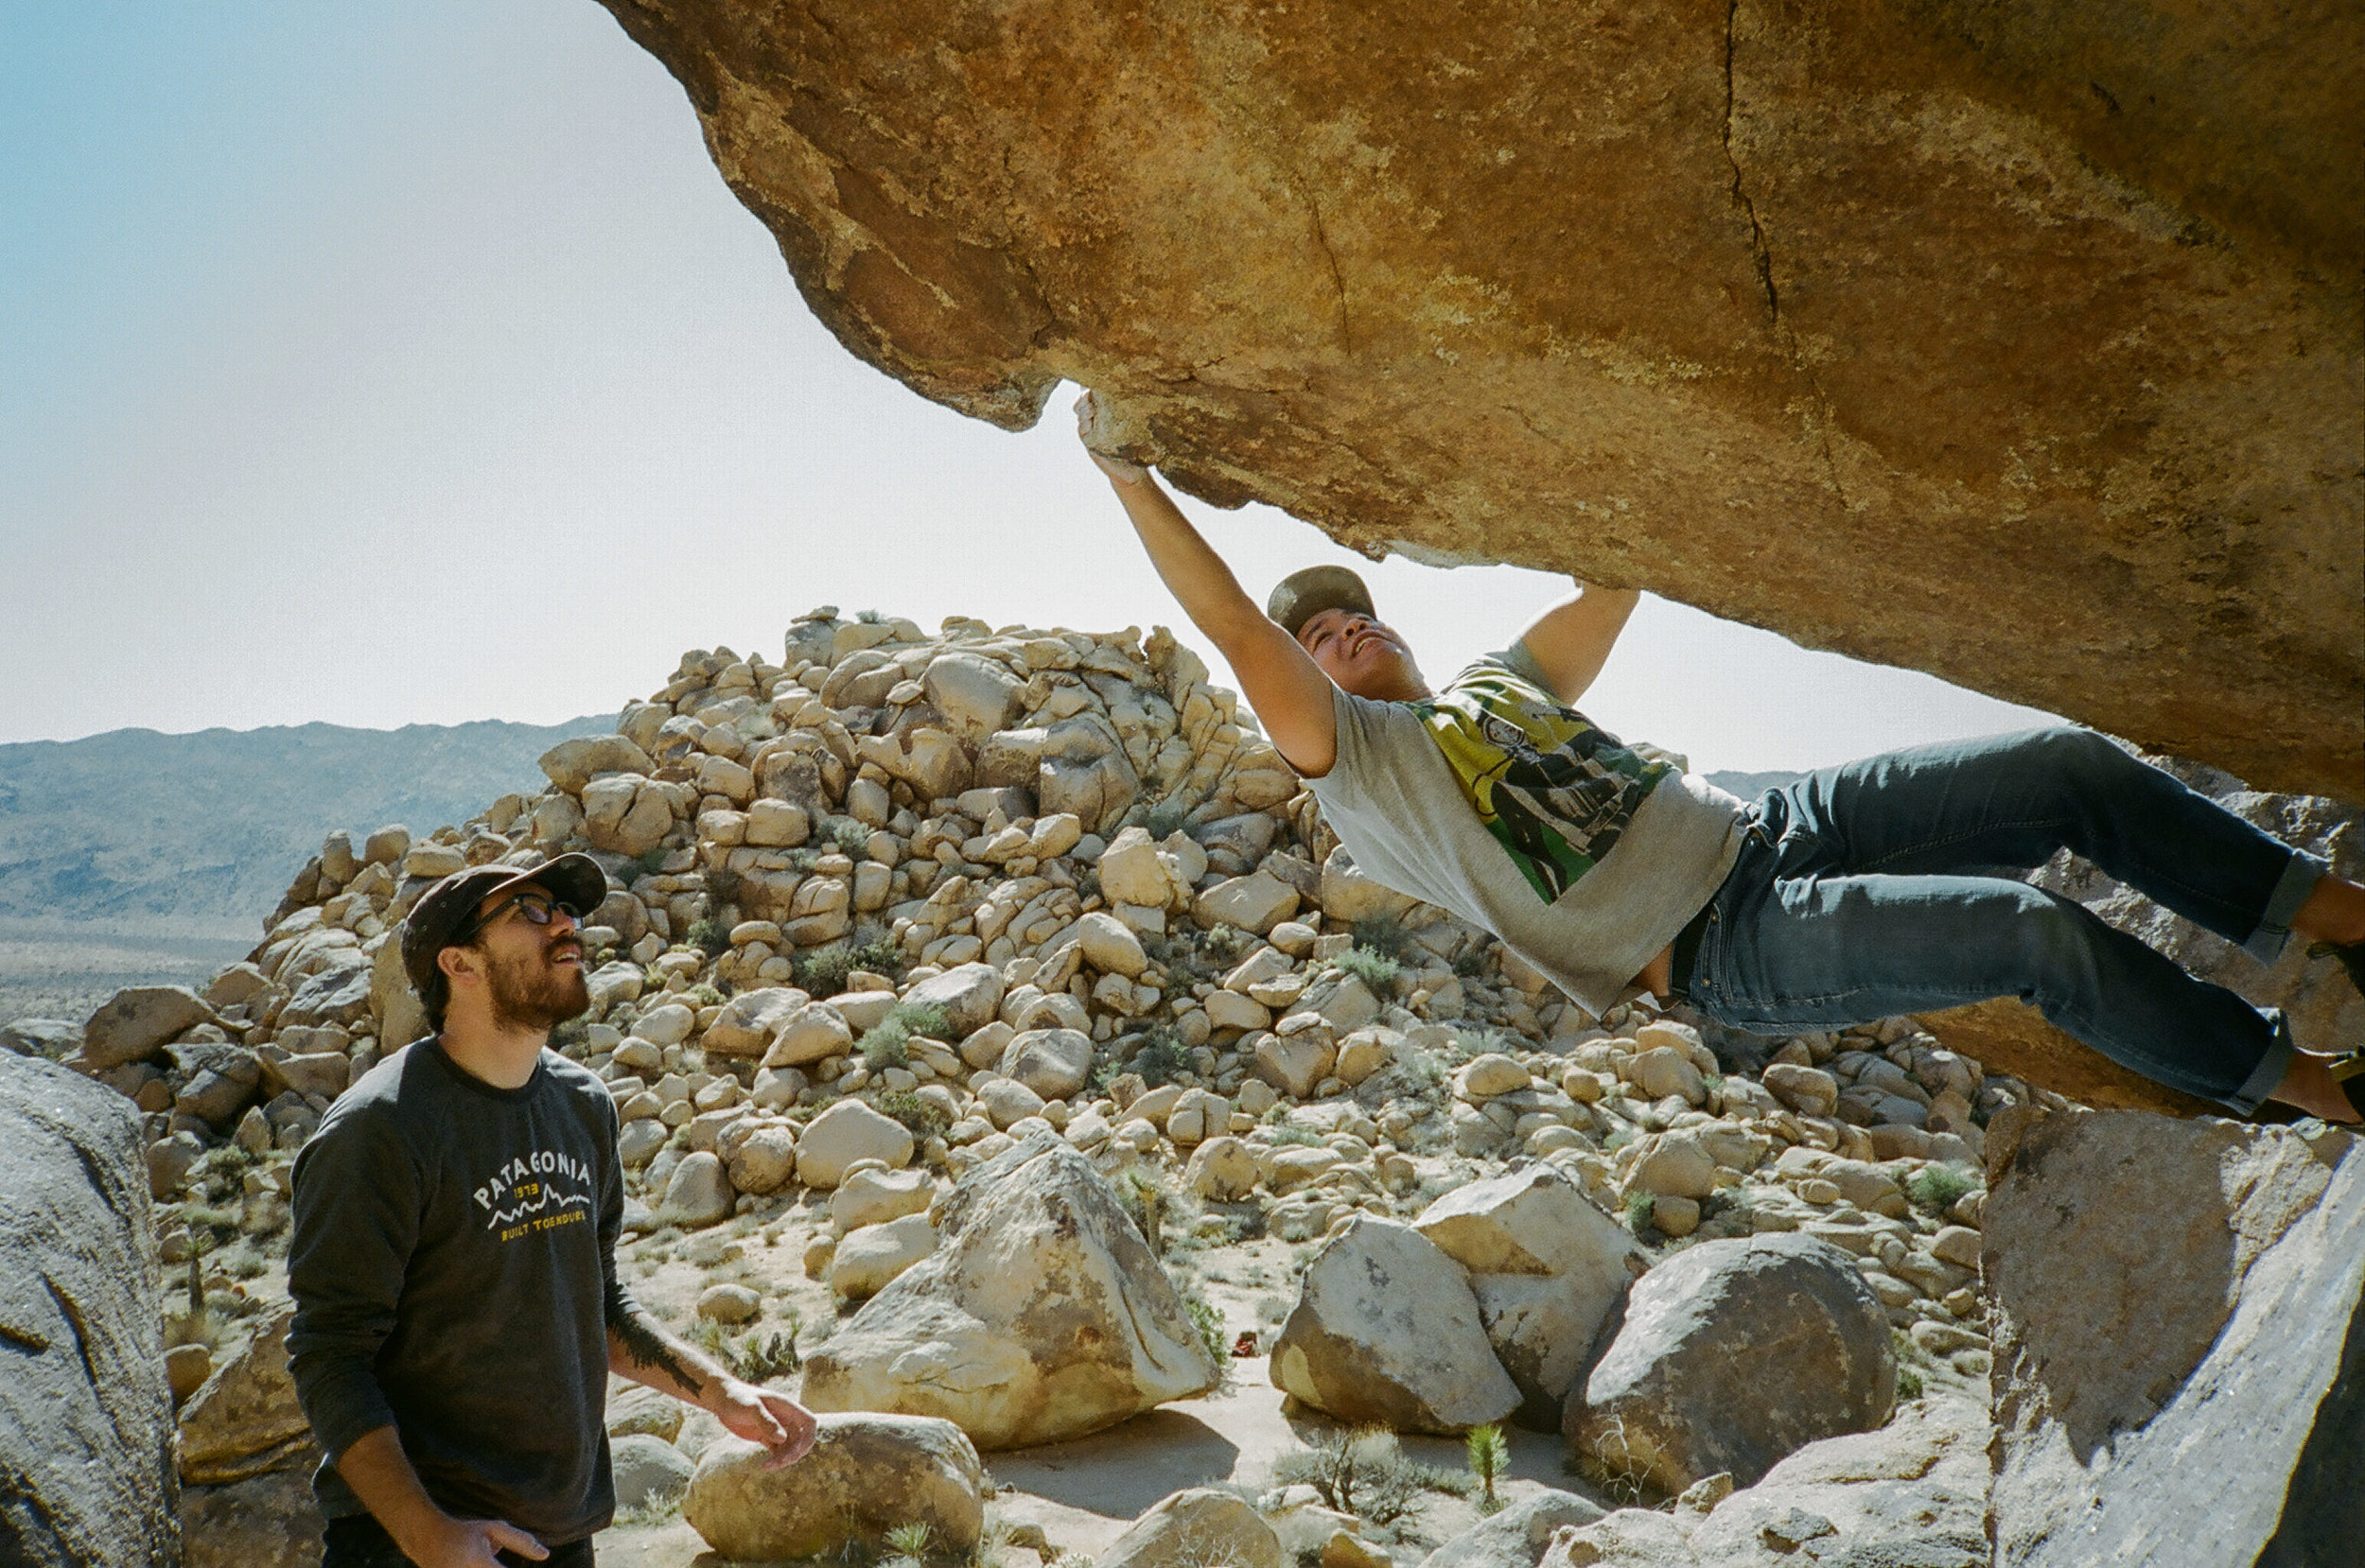 the Chocolate Roof v4 route in Joshua Tree